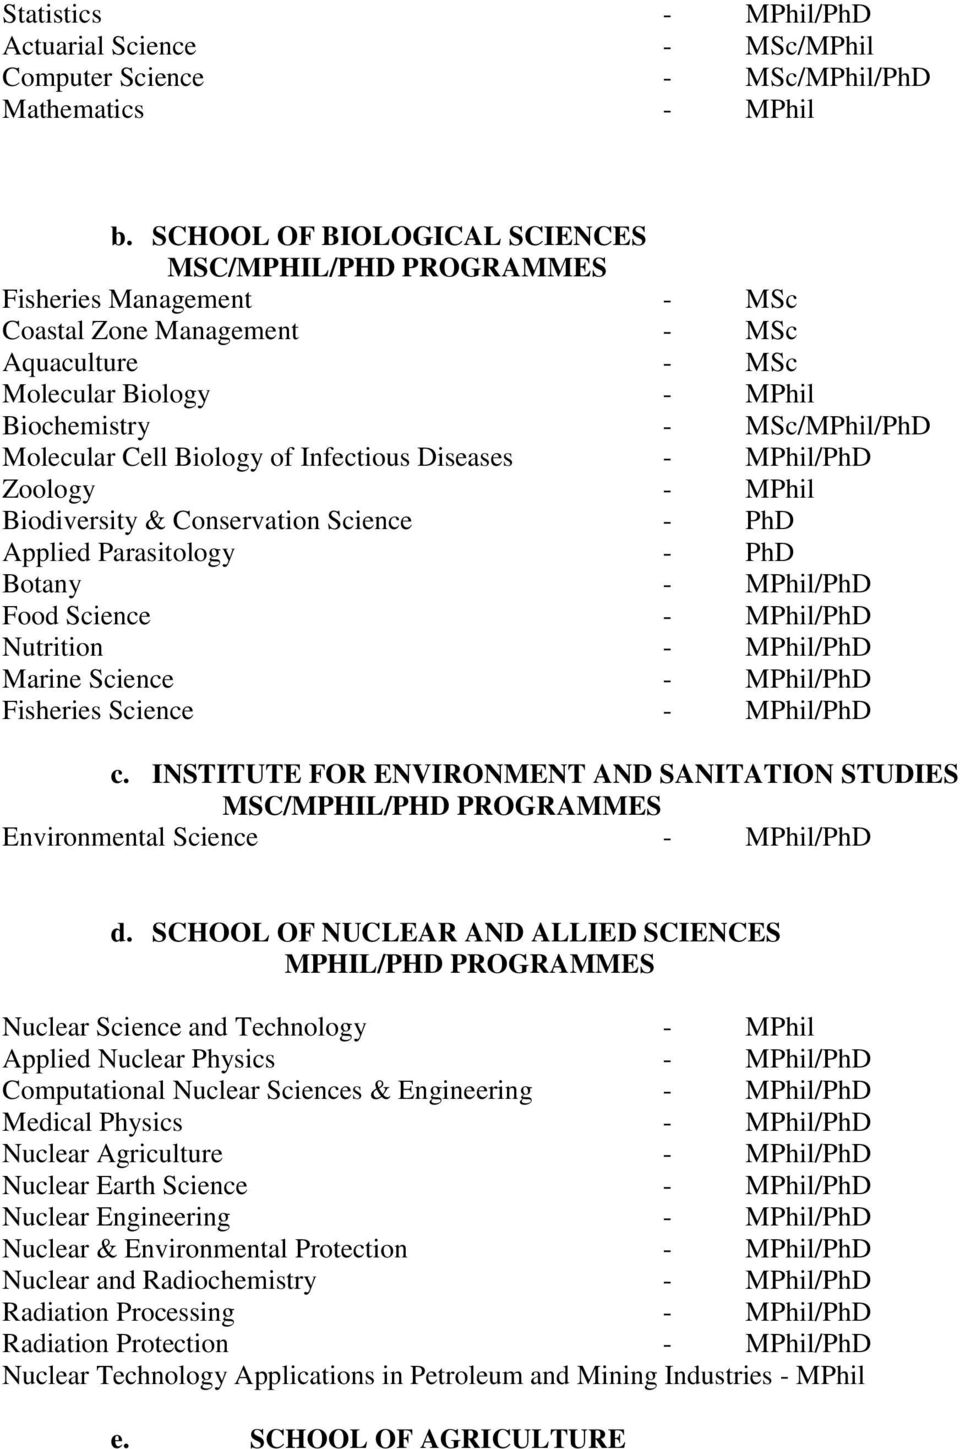 Biology of Infectious Diseases - MPhil/PhD Zoology - MPhil Biodiversity & Conservation Science - PhD Applied Parasitology - PhD Botany - MPhil/PhD Food Science - MPhil/PhD Nutrition - MPhil/PhD